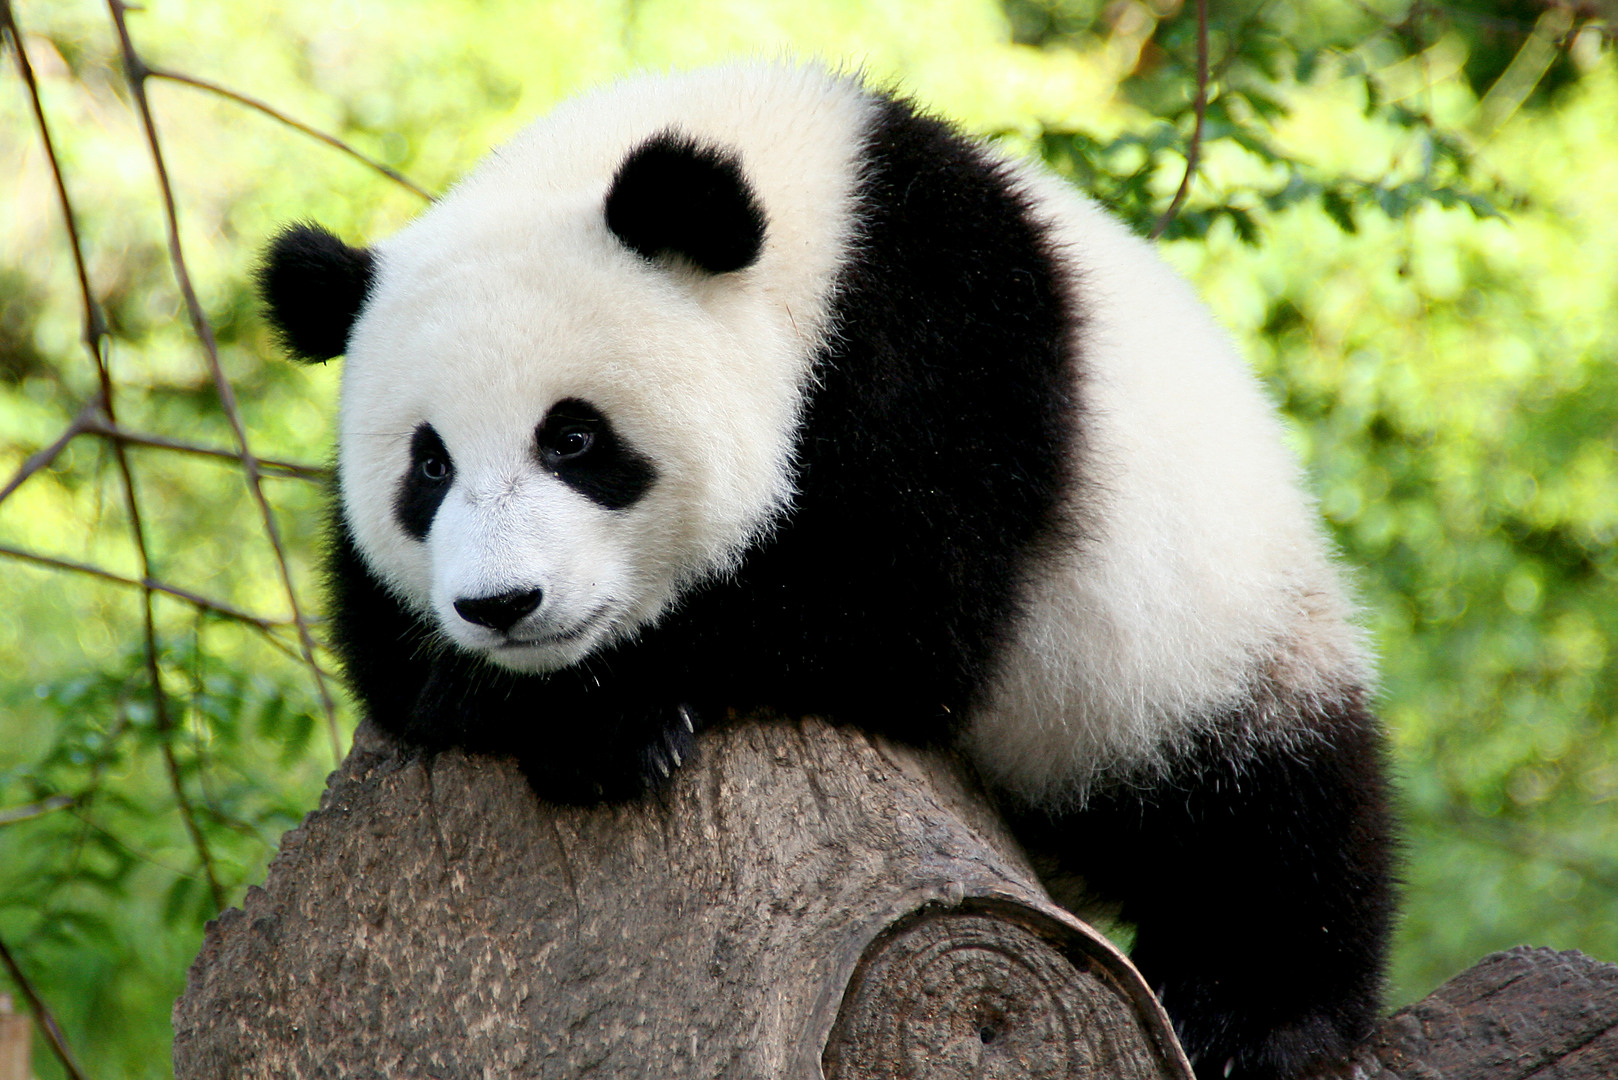 Picture from seoposicion. The giant panda lives in a few mountain ranges in central China, mainly in Sichuan province, but also in neighbouring provinces, namely Shaanxi and Gansu. As a result of farming, deforestation, and other development, the giant panda has been driven out of the lowland areas where it once lived.  The giant panda is a conservation reliant endangered species. A 2007 report shows 239 pandas living in captivity inside China and another 27 outside the country. As of December 2014, 49 giant pandas live in captivity outside China, living in 18 zoos in 13 different countries.